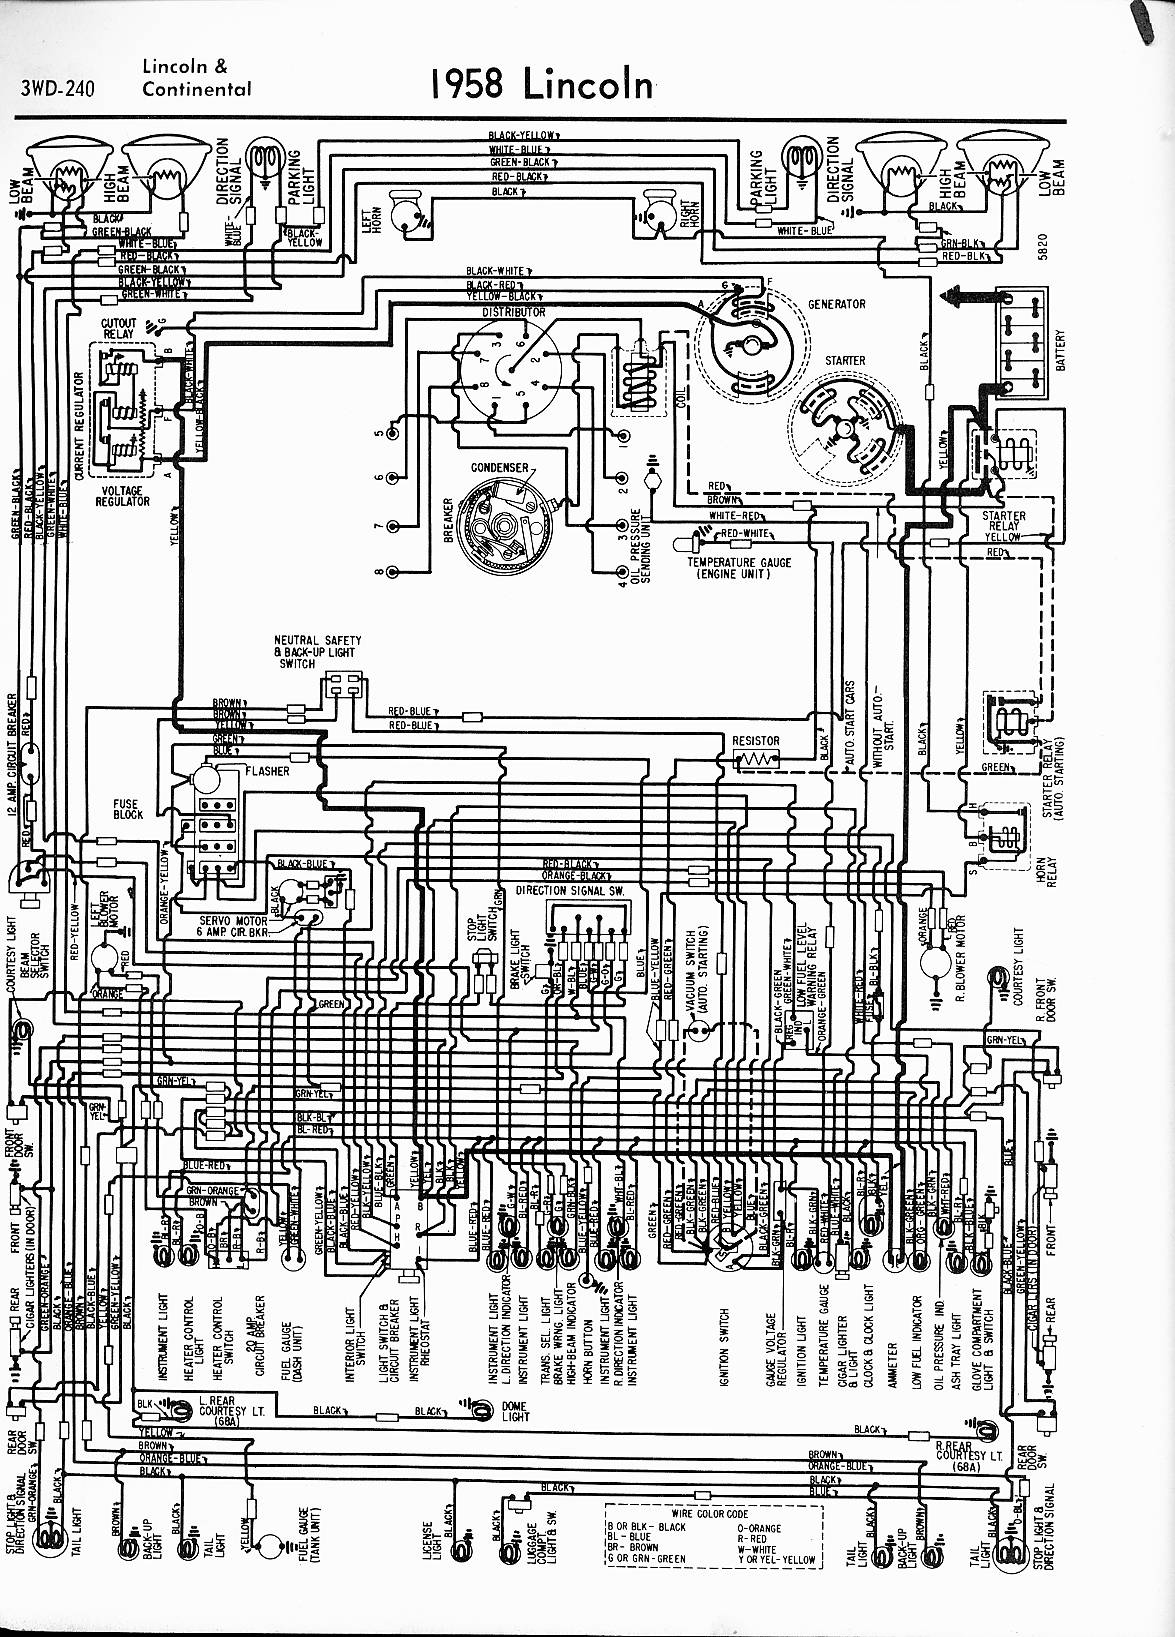 hight resolution of 1966 lincoln continental wiring diagrams wiring library rh 63 skriptoase de 1969 lincoln continental wiring diagram